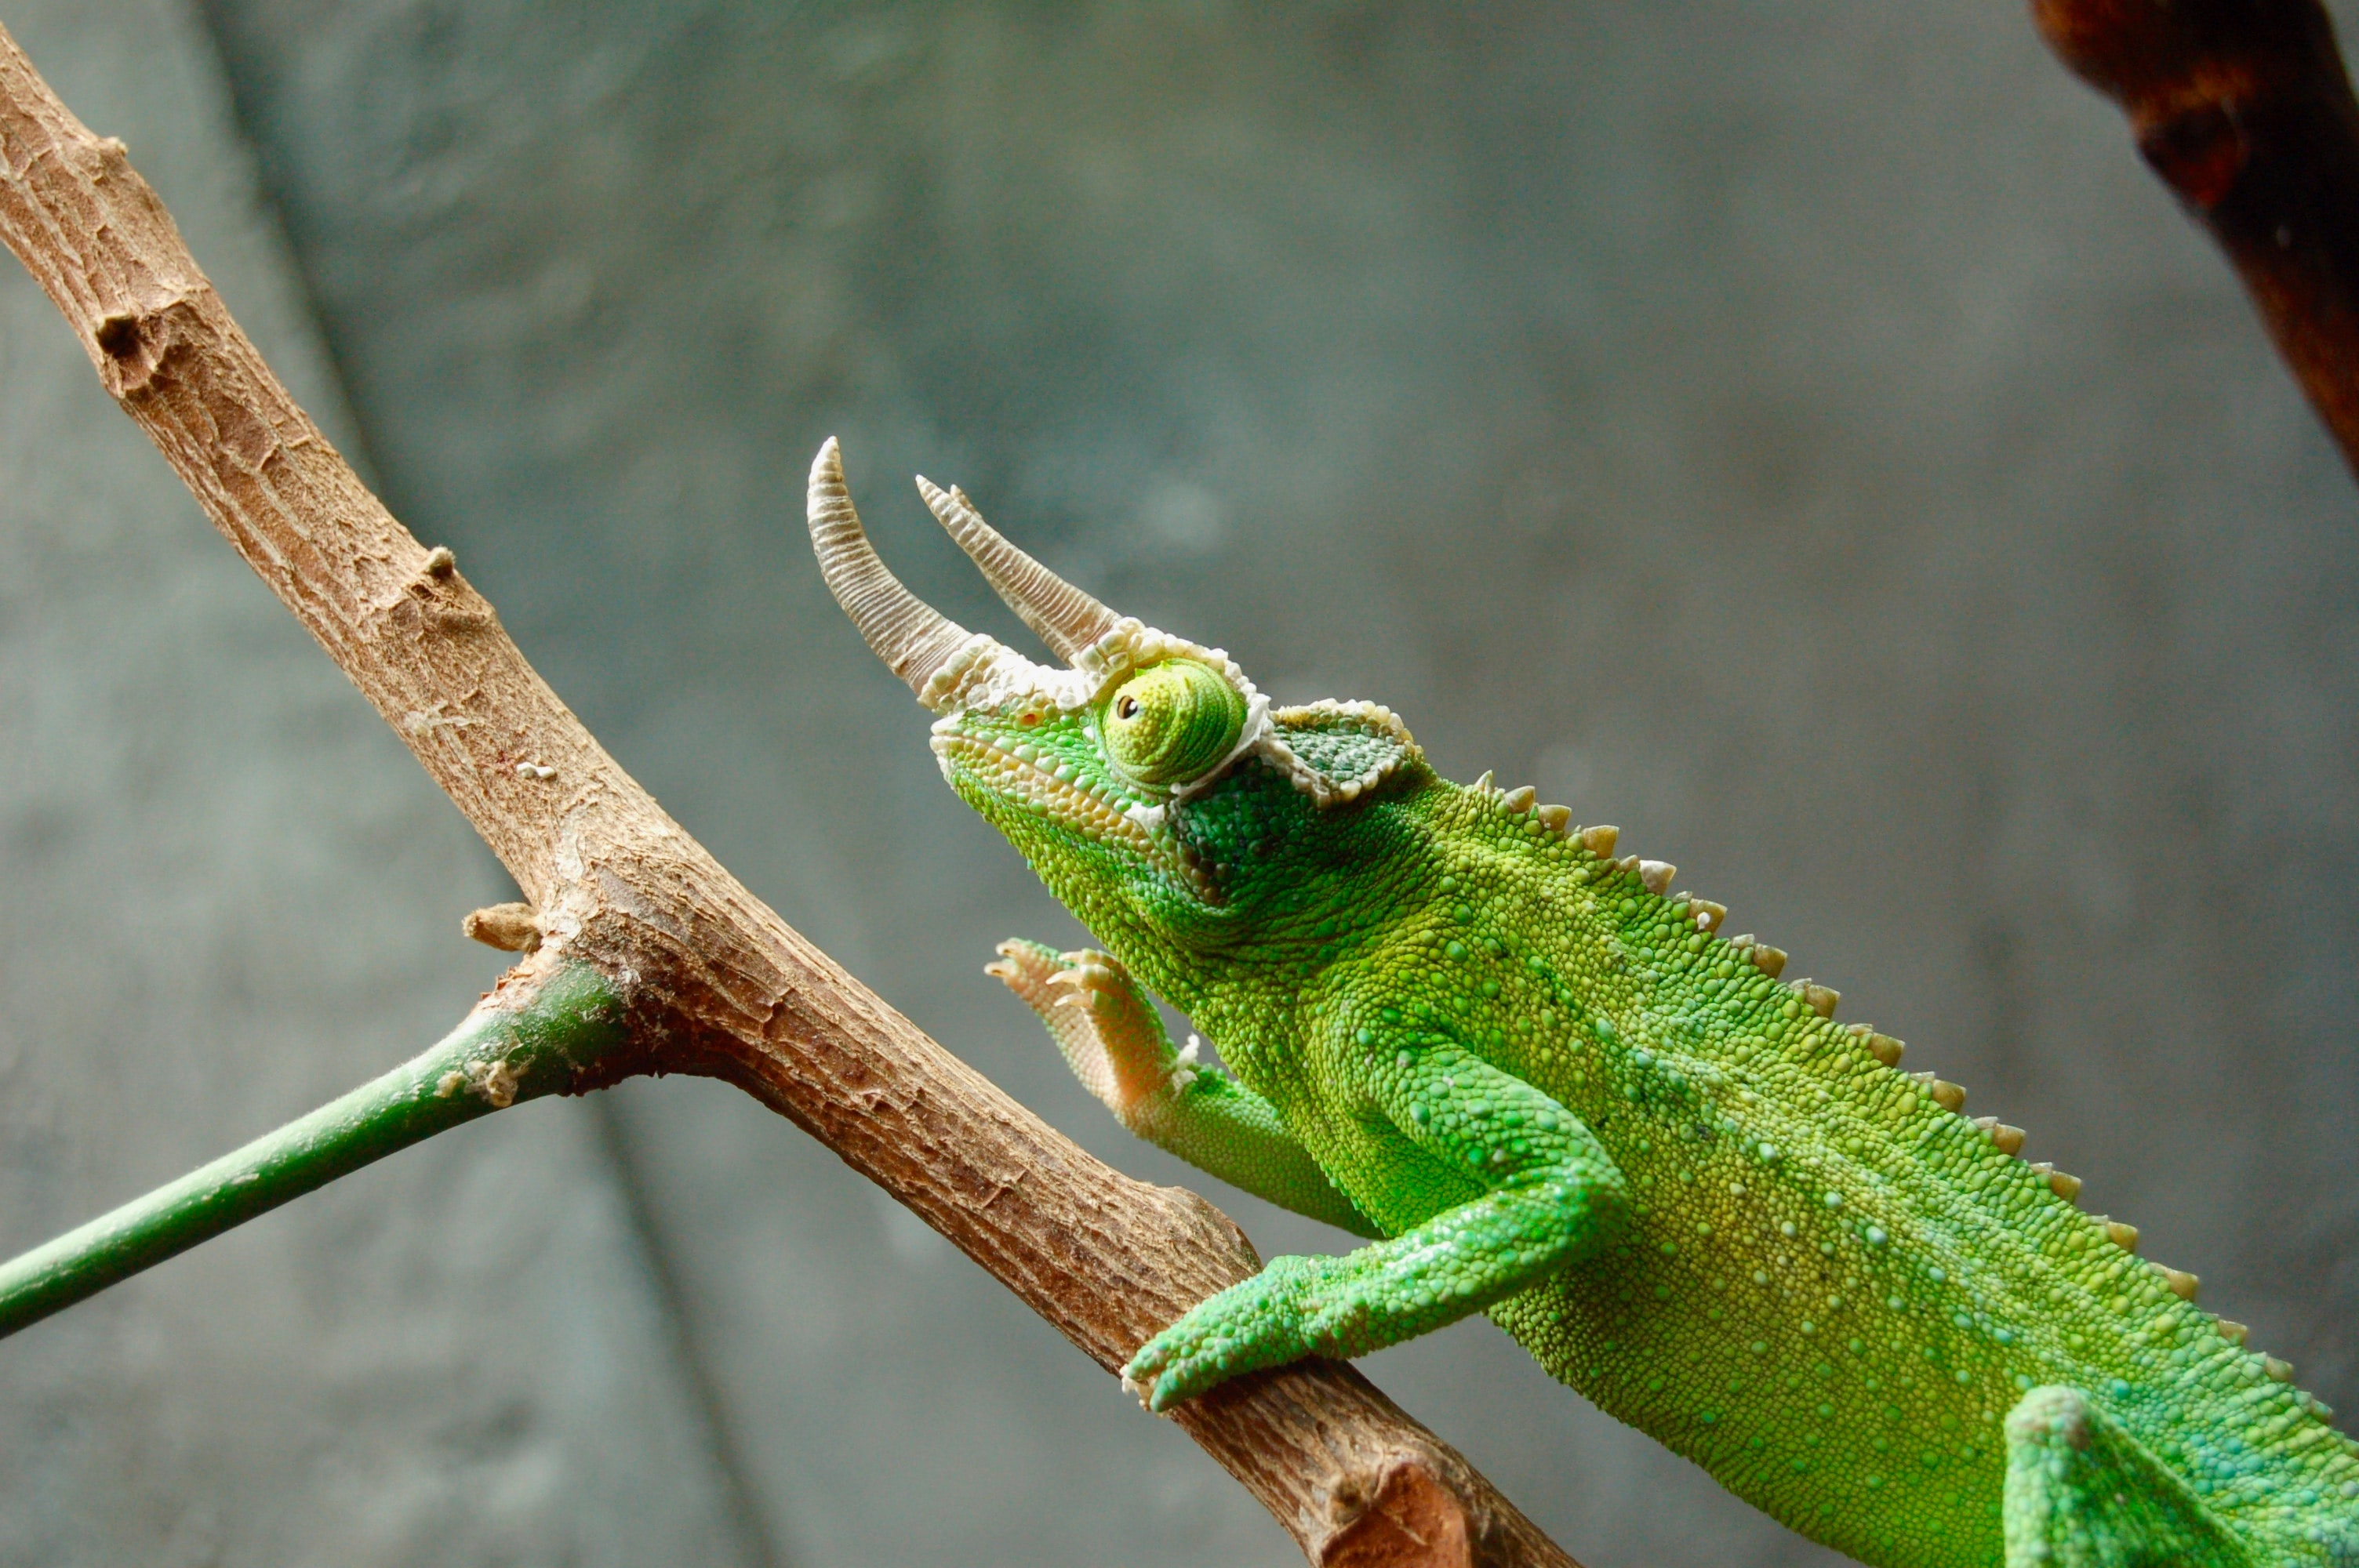 shallow focus photo of green reptile